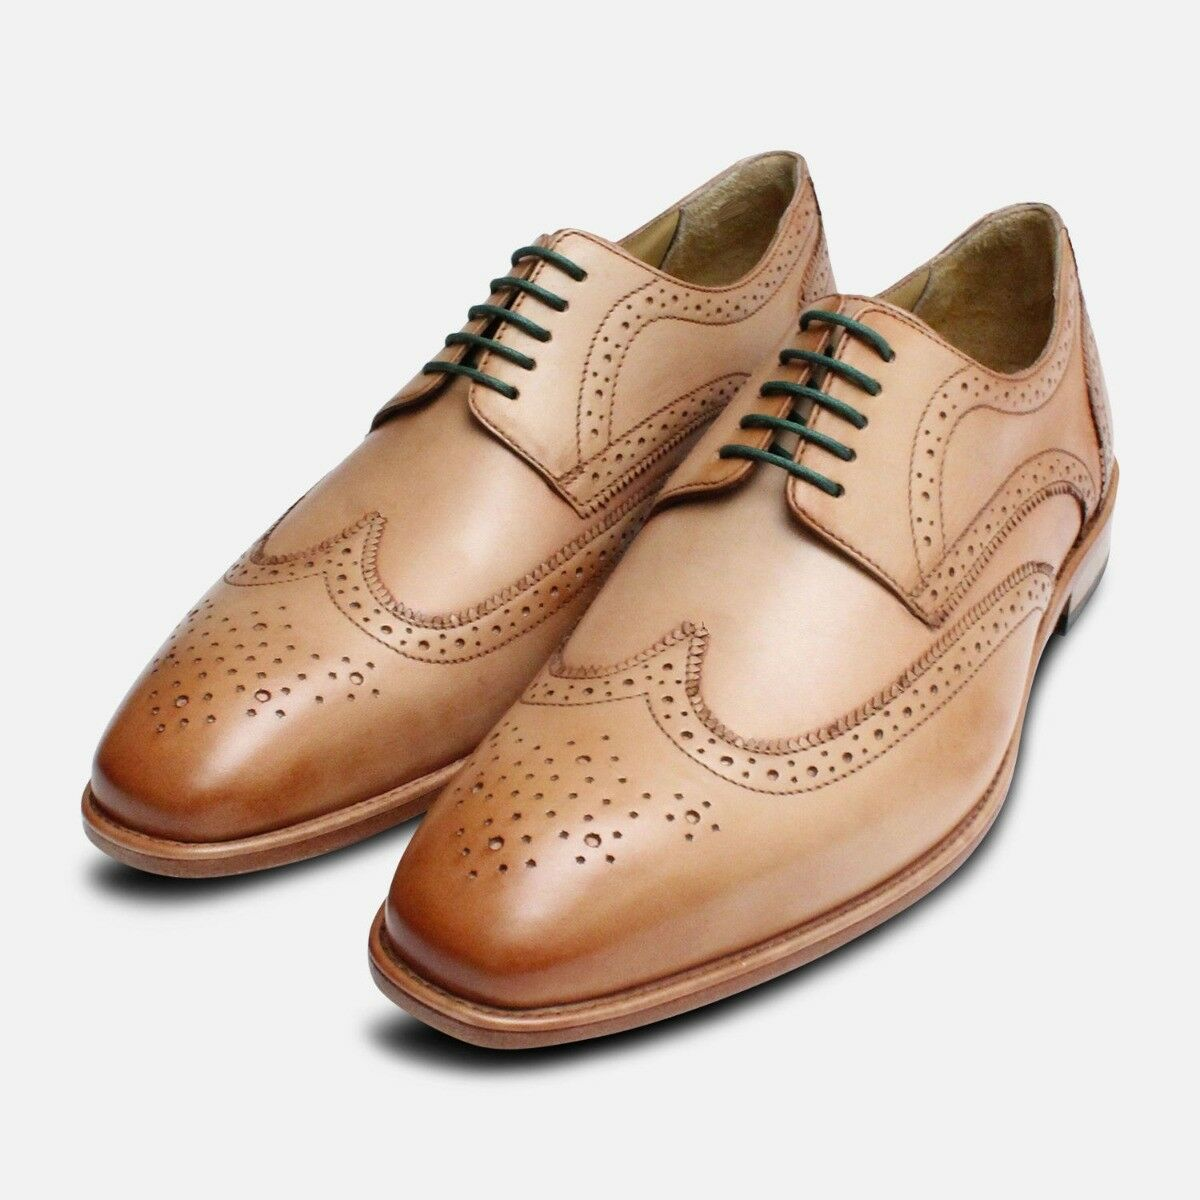 Wingtip Brogues in Beige by Arthur Knight shoes